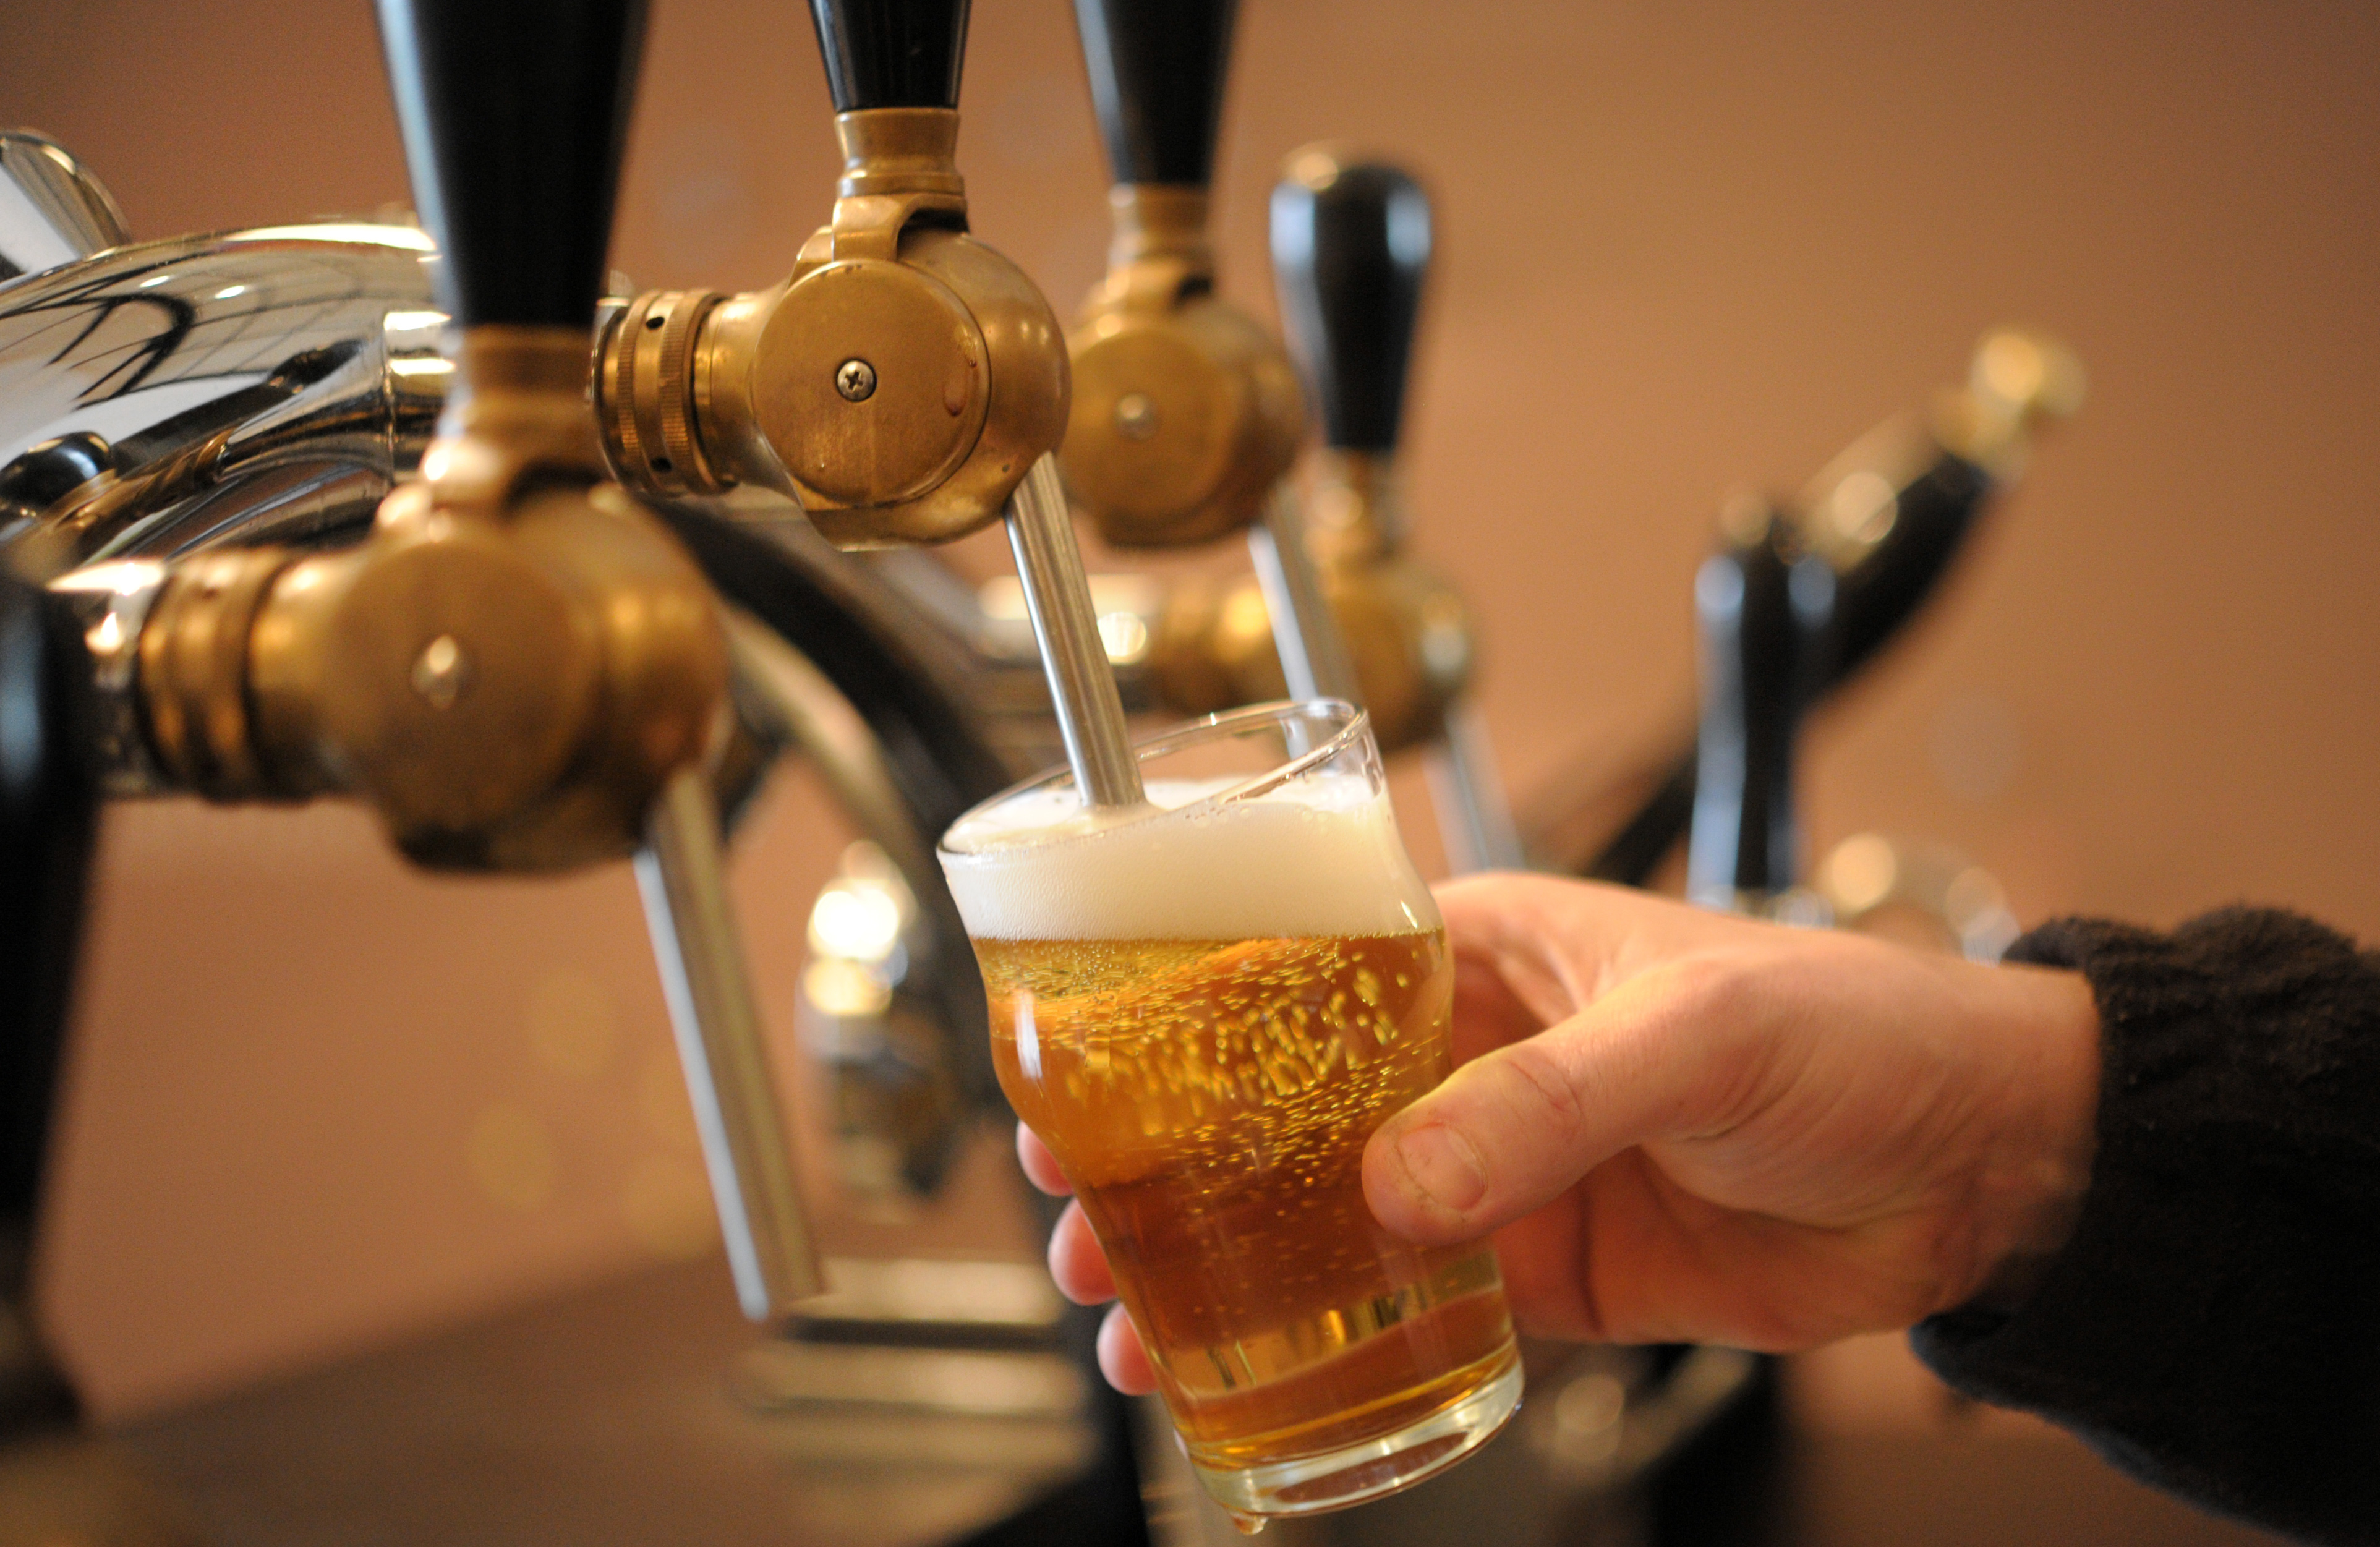 FRANCE-ALCOHOL-BEER-BREWERY-DRINK